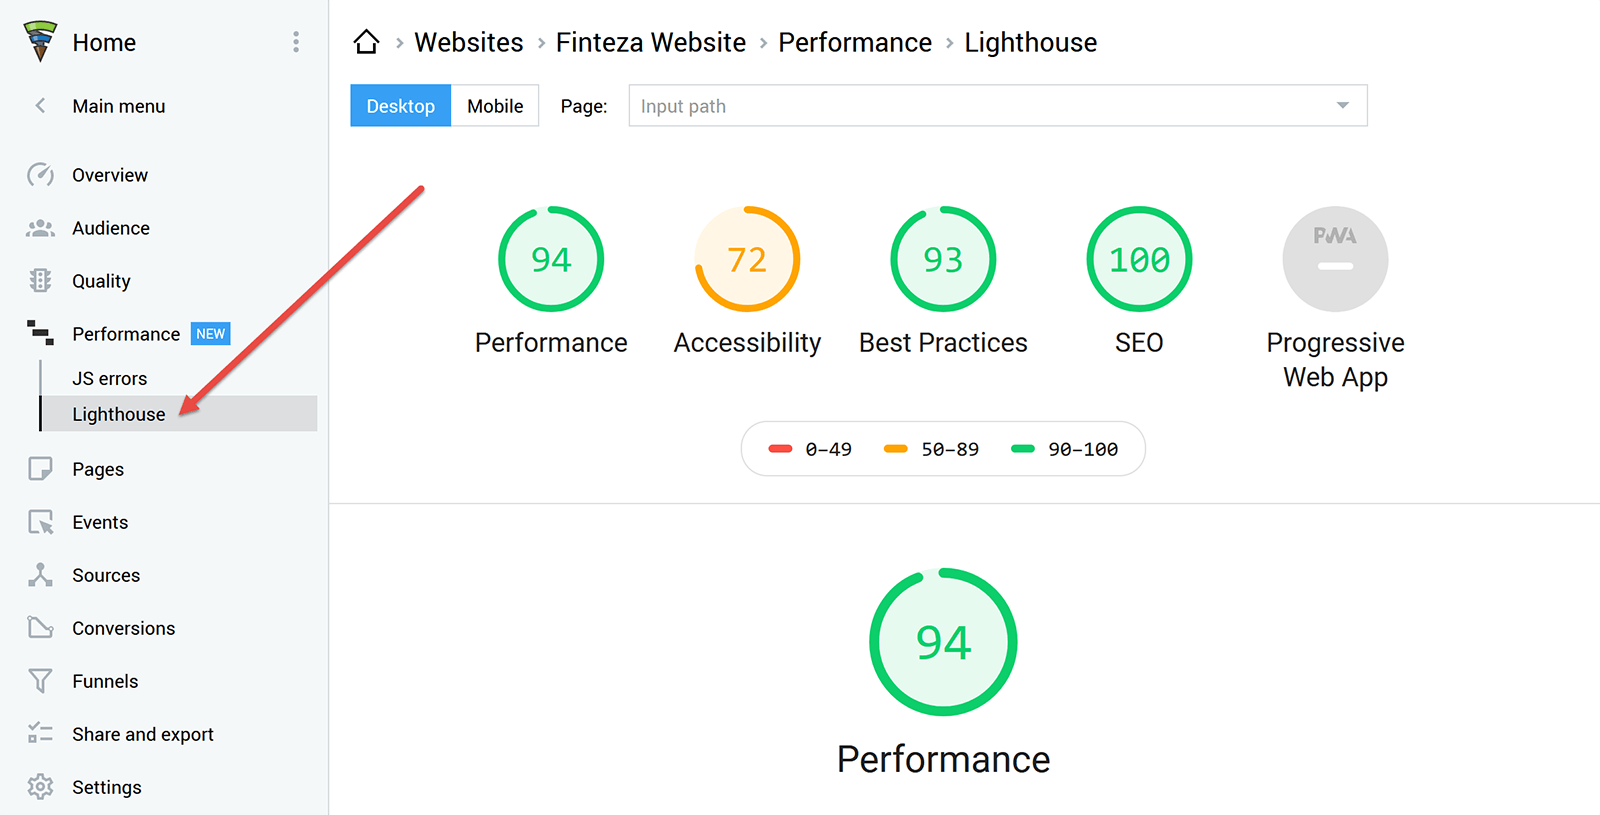 Find the new report in the Performance section